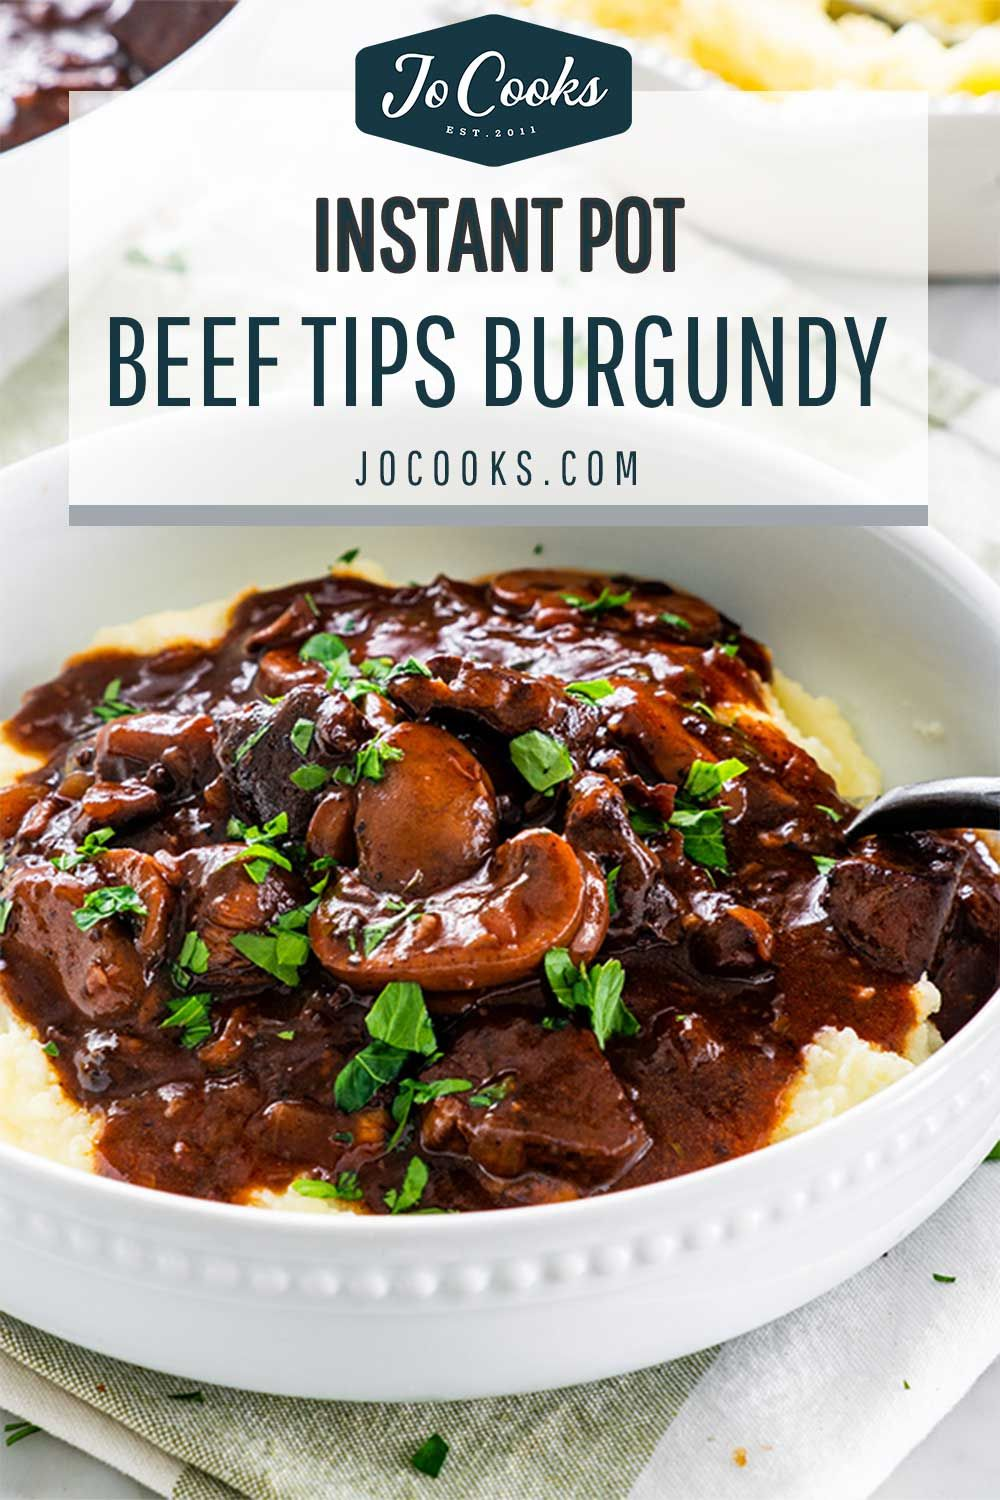 Instant Pot Beef Burgundy Made With A Full Bottle Of Red Wine And Fall Apart Tender Morse Beef Recipe Instant Pot Instant Pot Beef Instant Pot Dinner Recipes